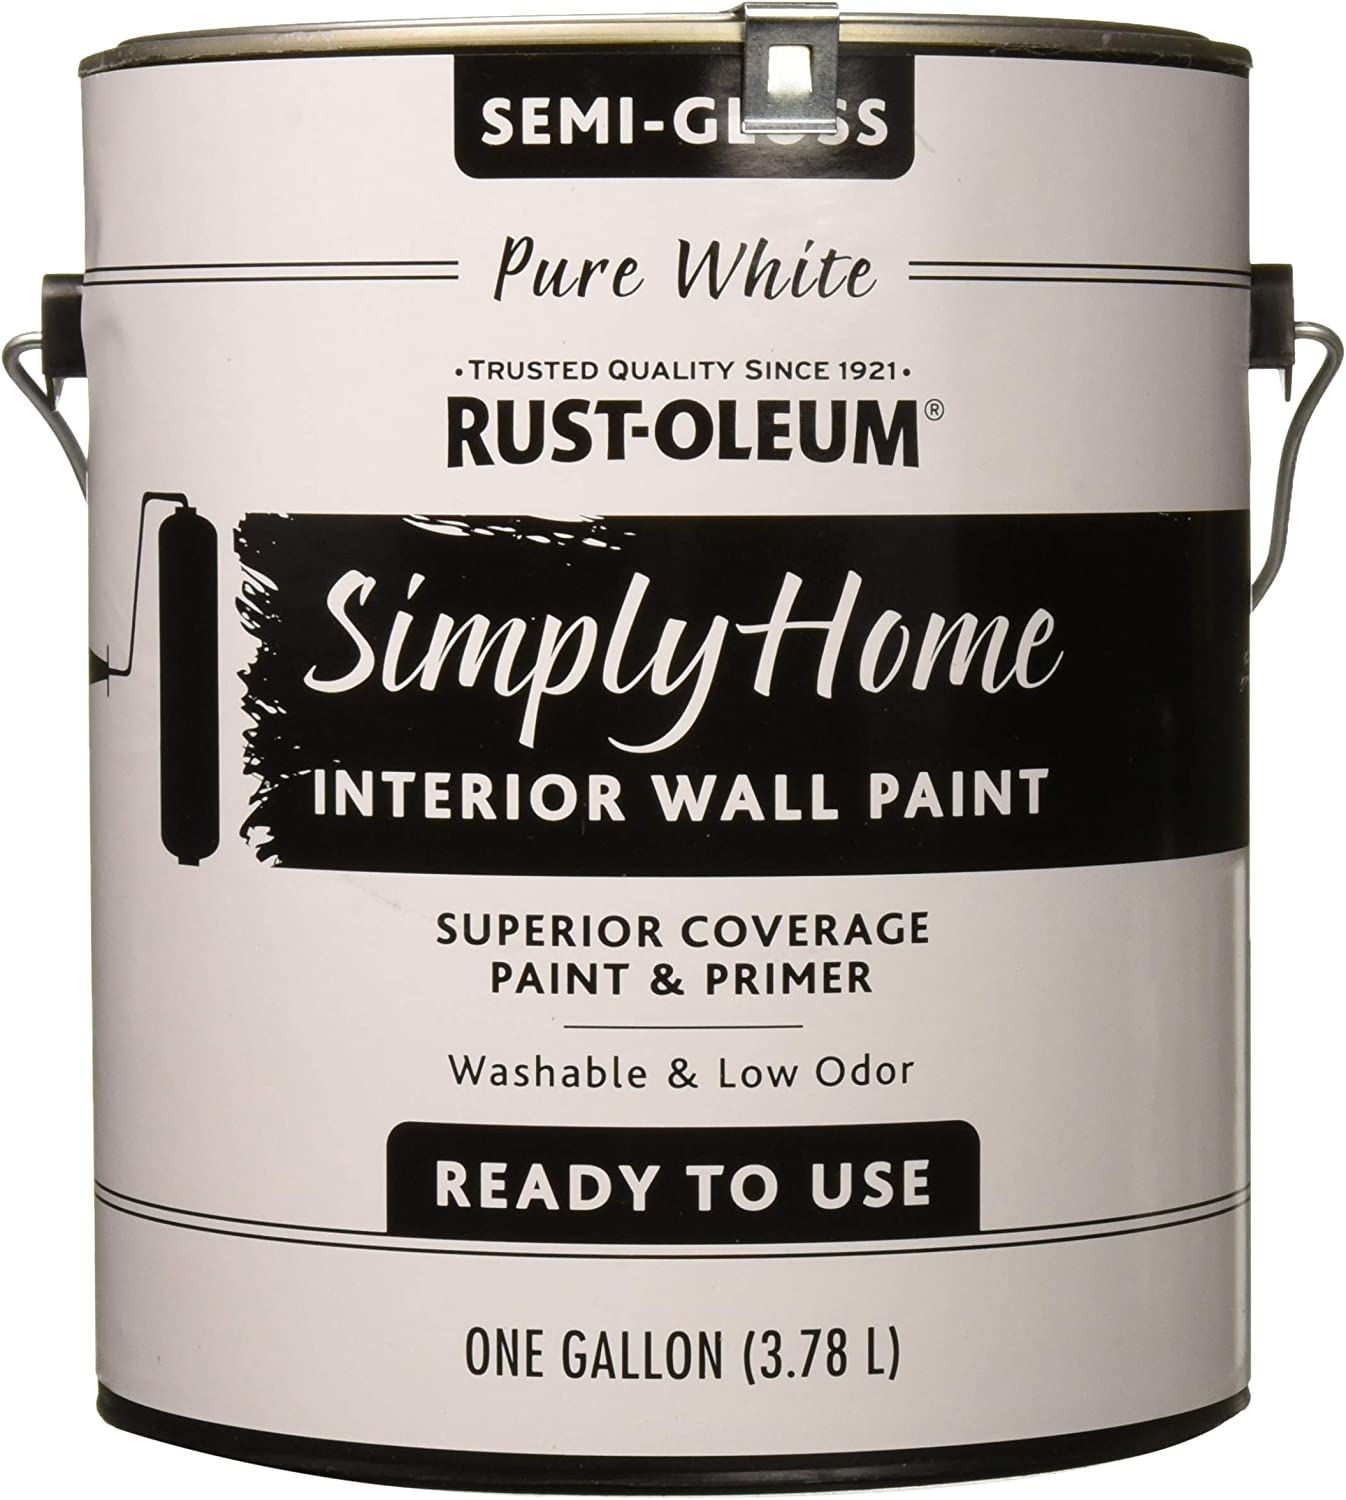 Rust-Oleum Simply Home Interior Wall Paint 332120 Simply Home Semigloss Interior Wall Paint, Pure White